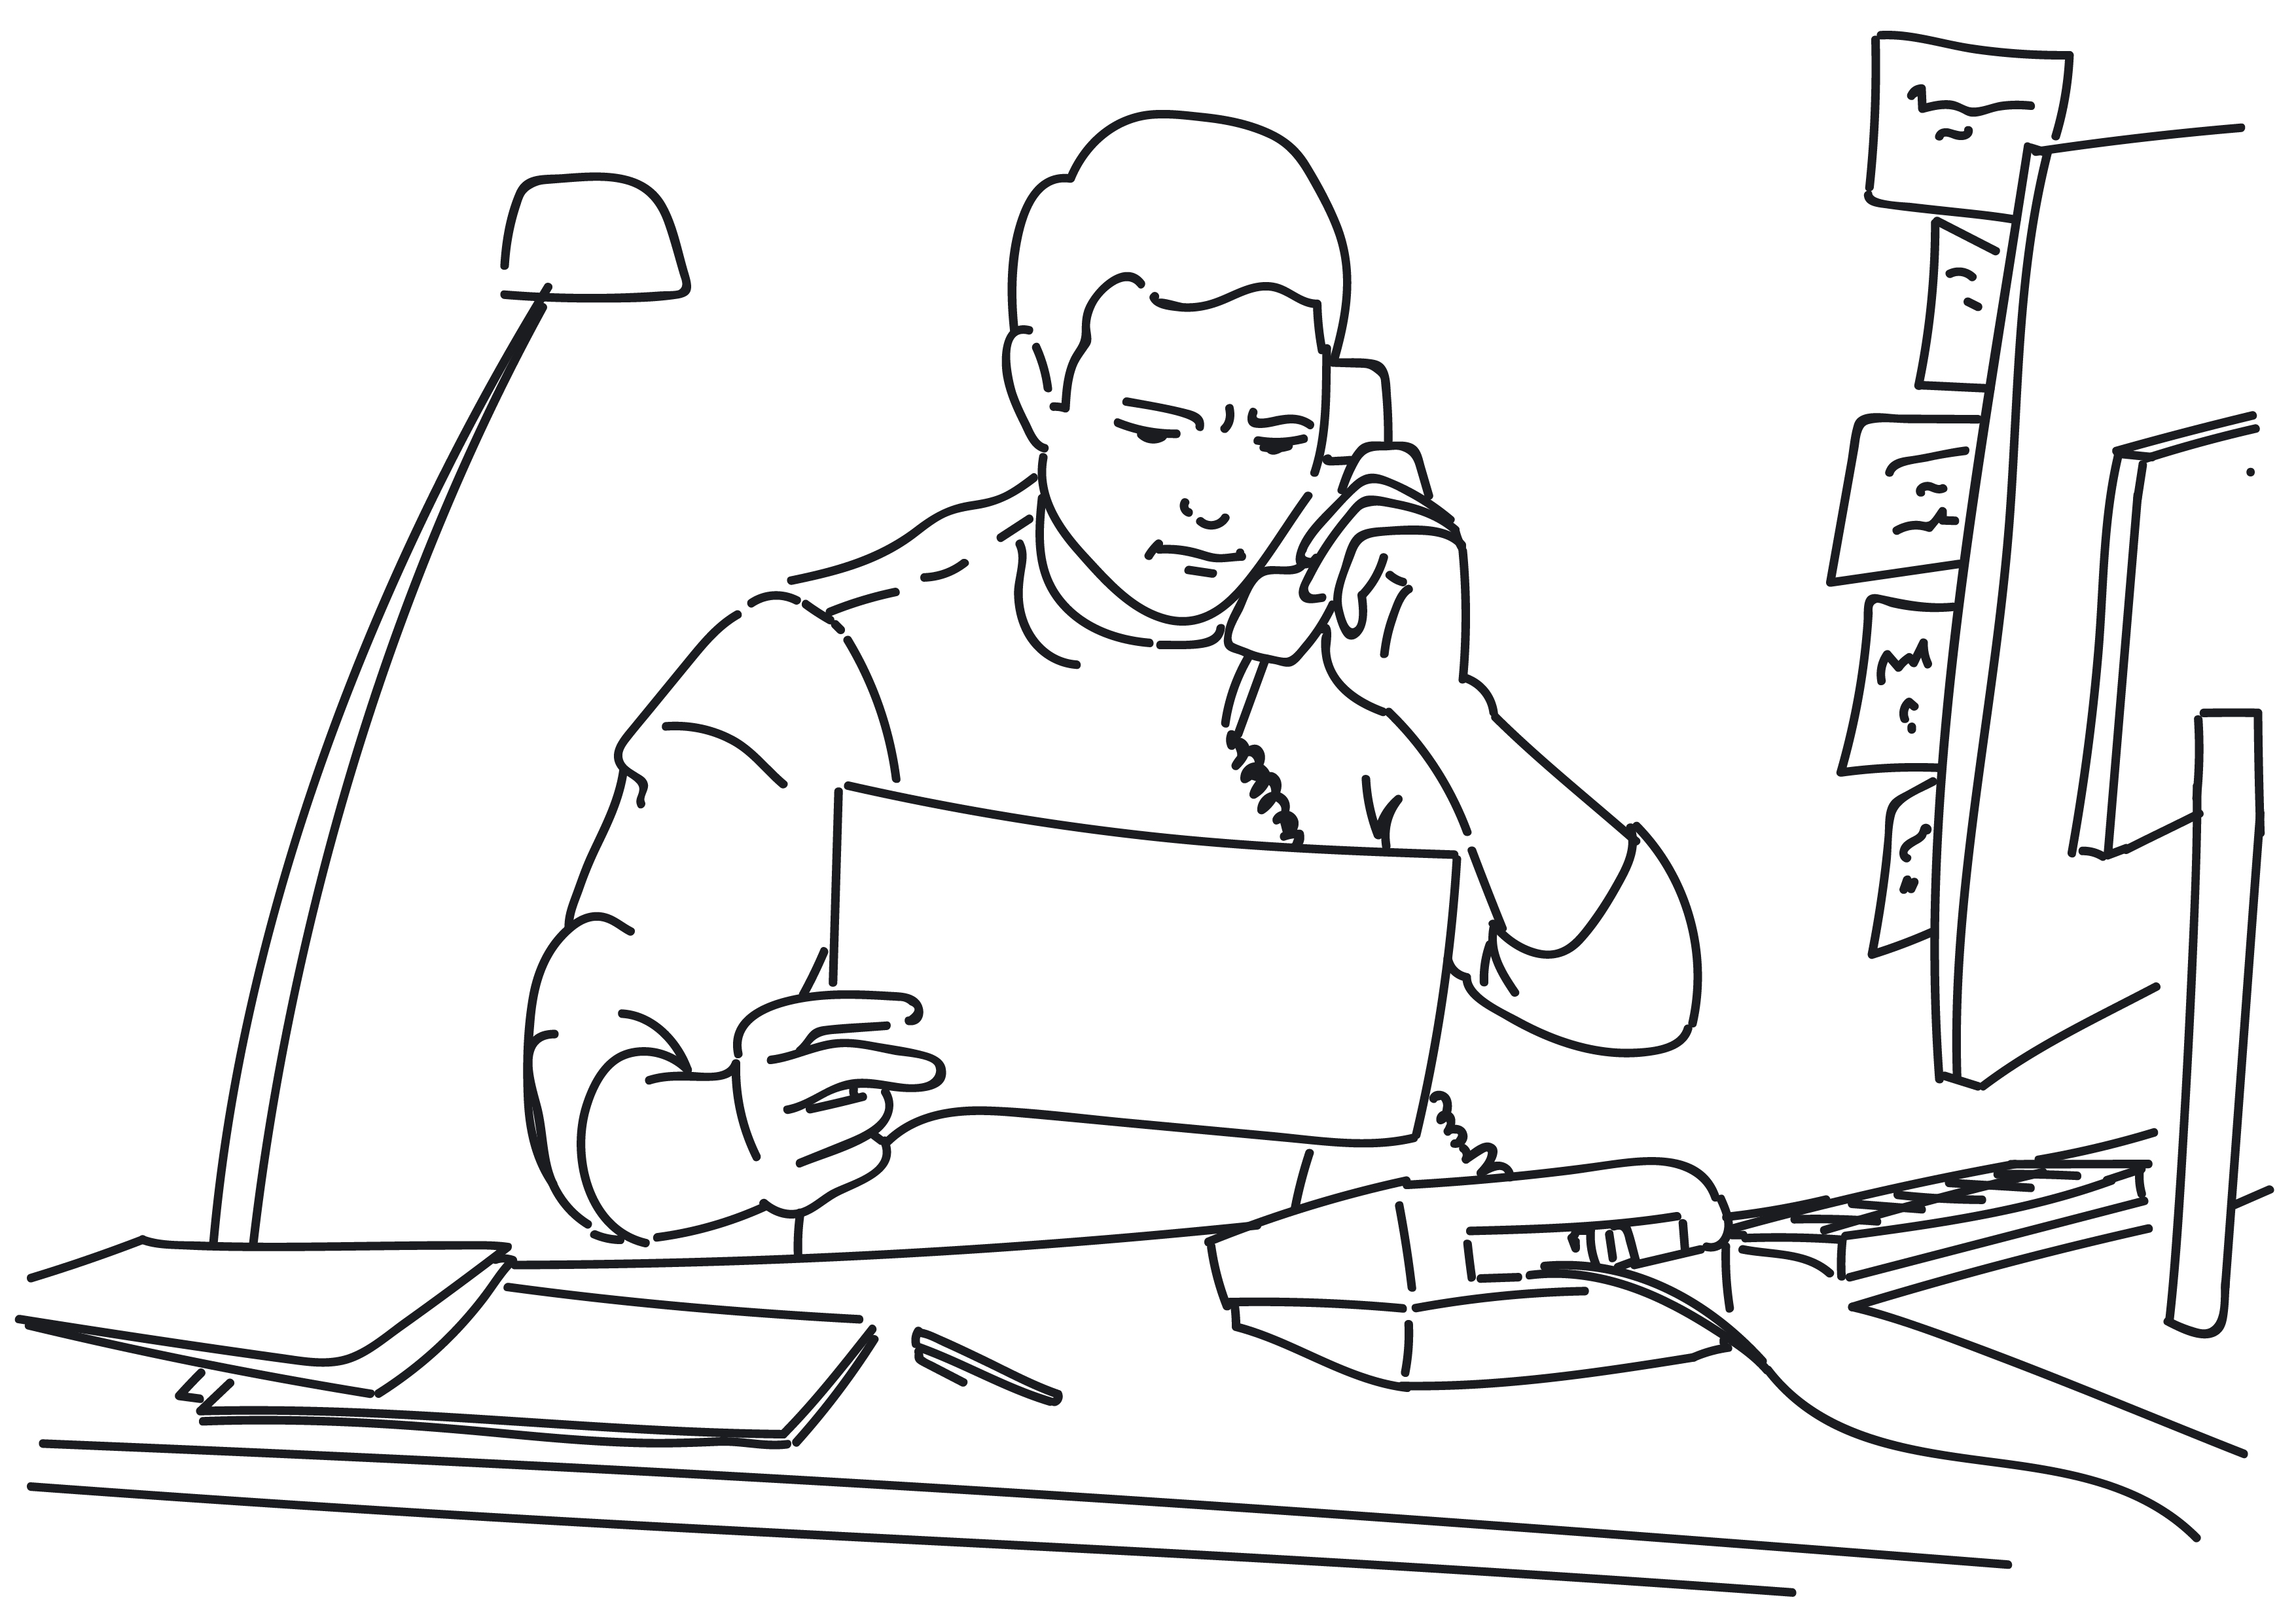 The Role of Cognitive Scarcity in Privacy Disclosure Behaviour. Illustration 1